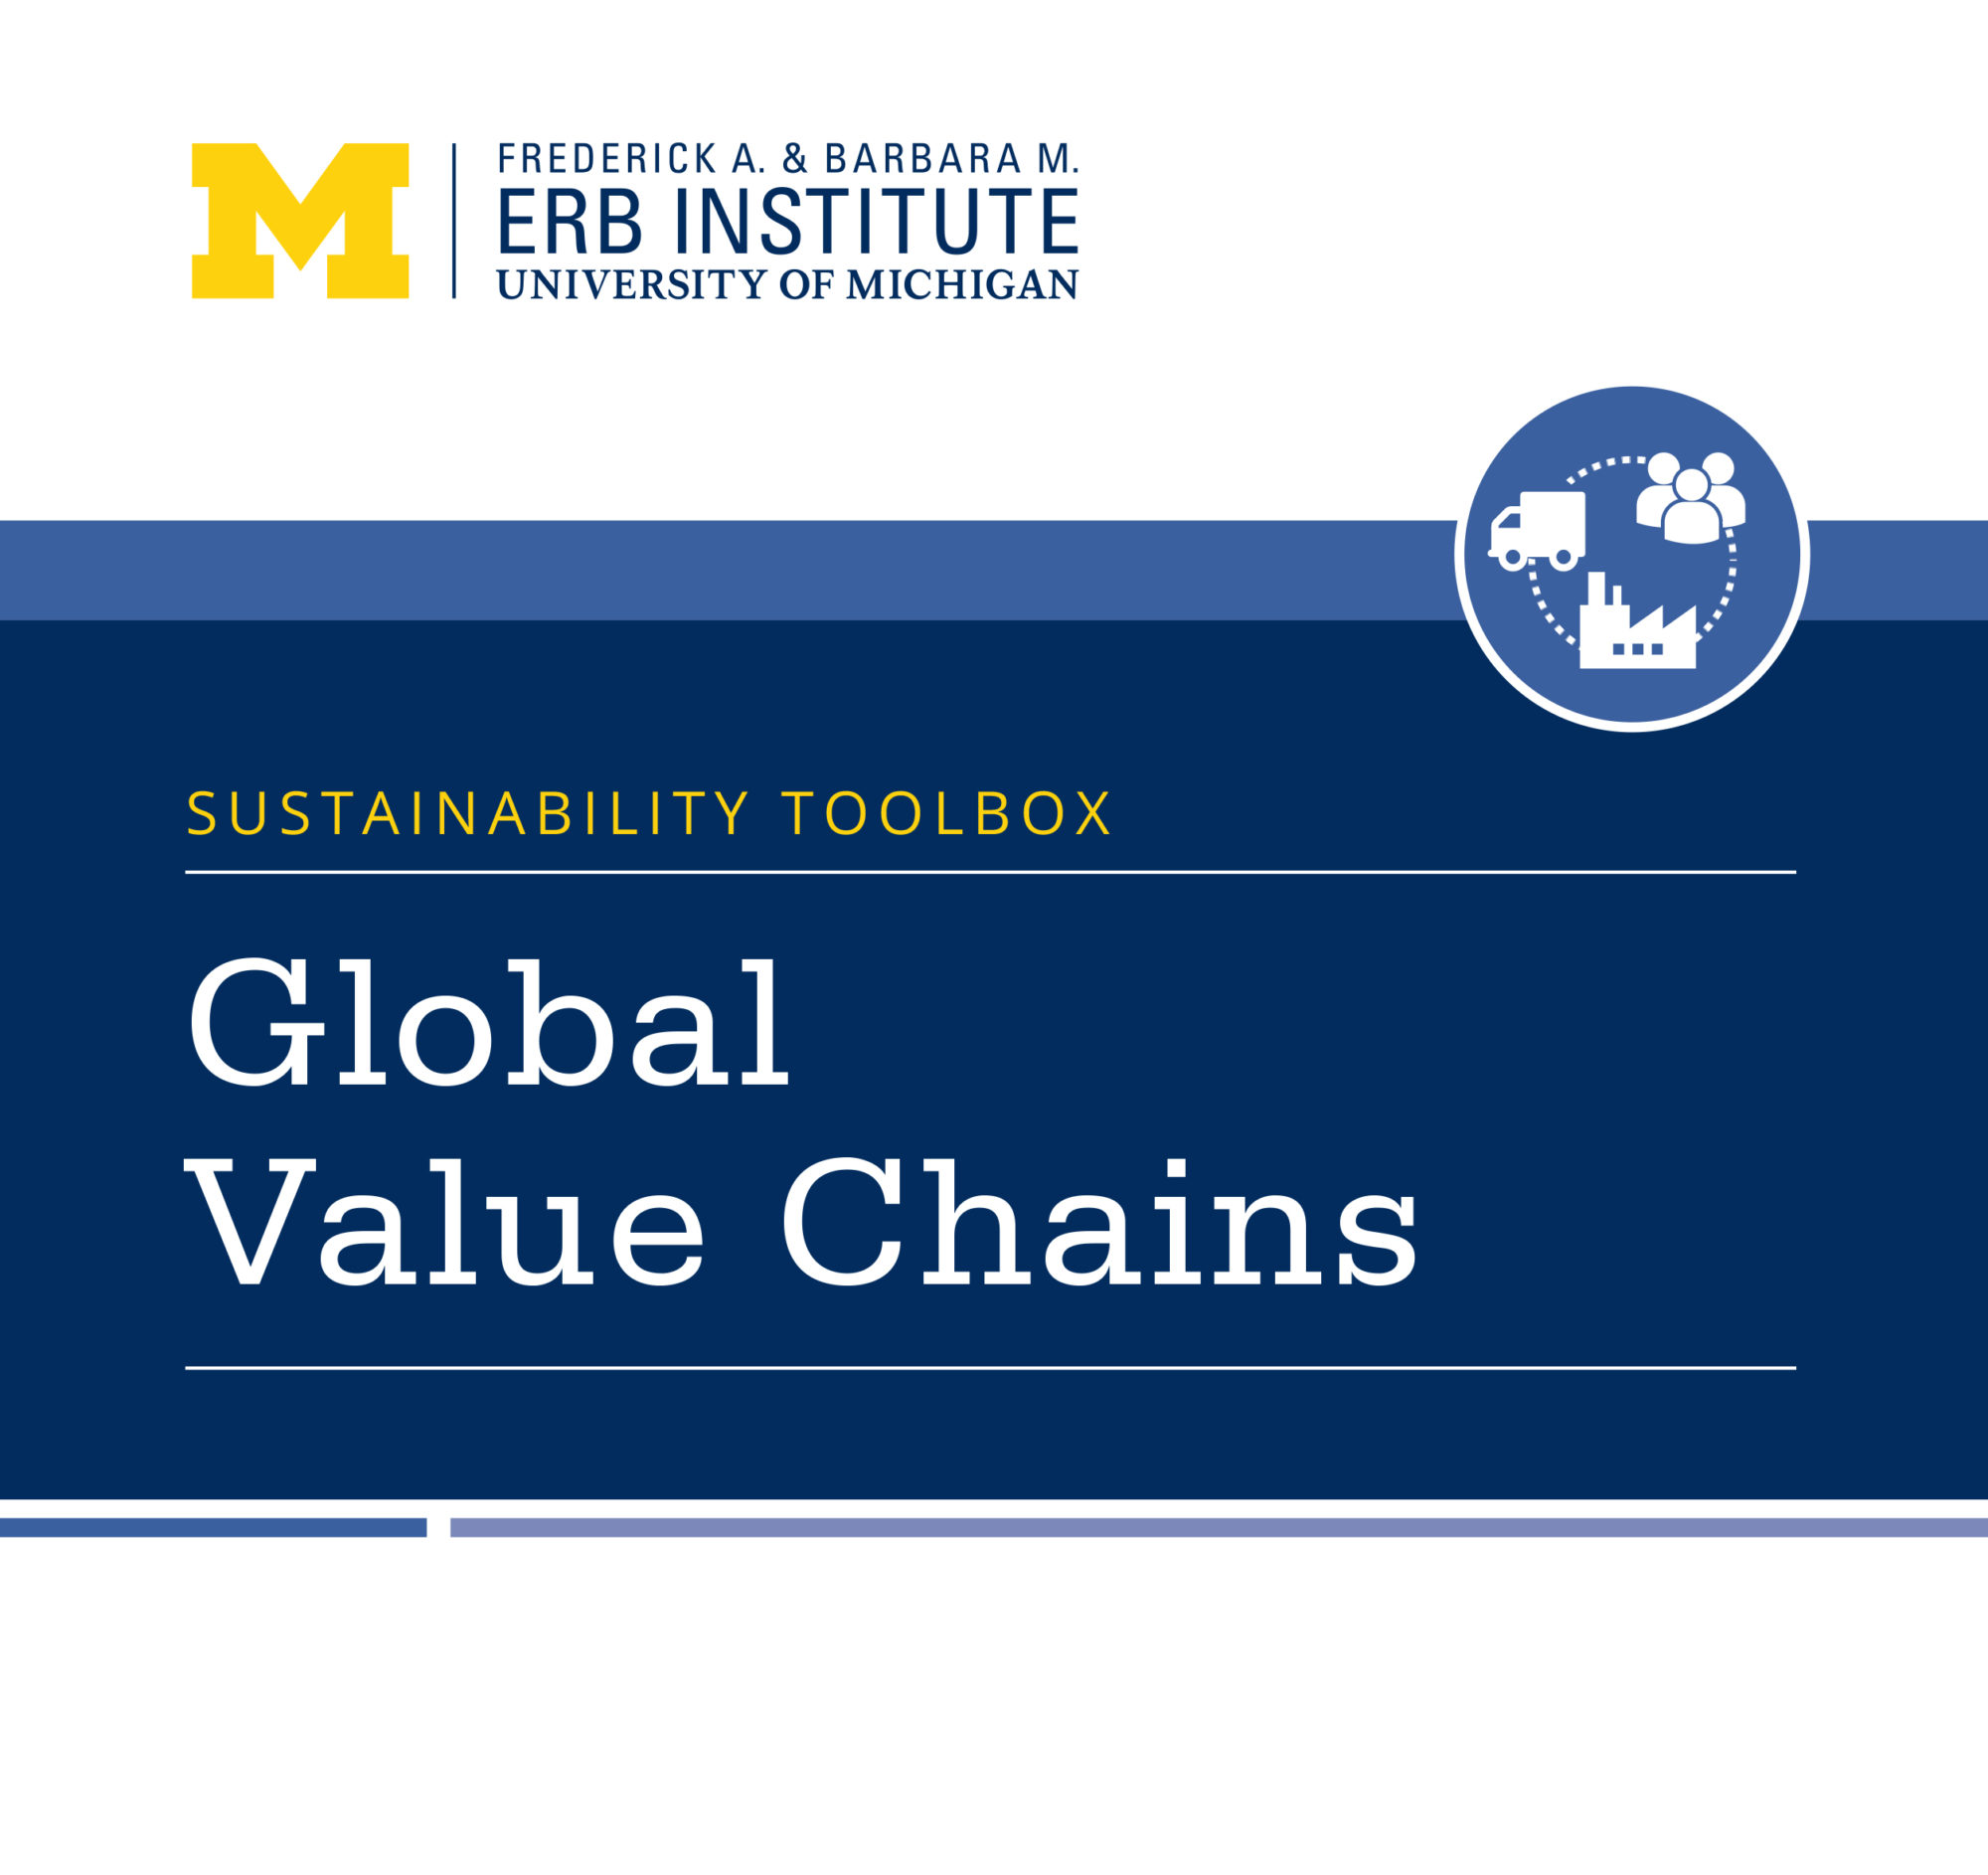 Sustainability Toolbox: Global Value Chains